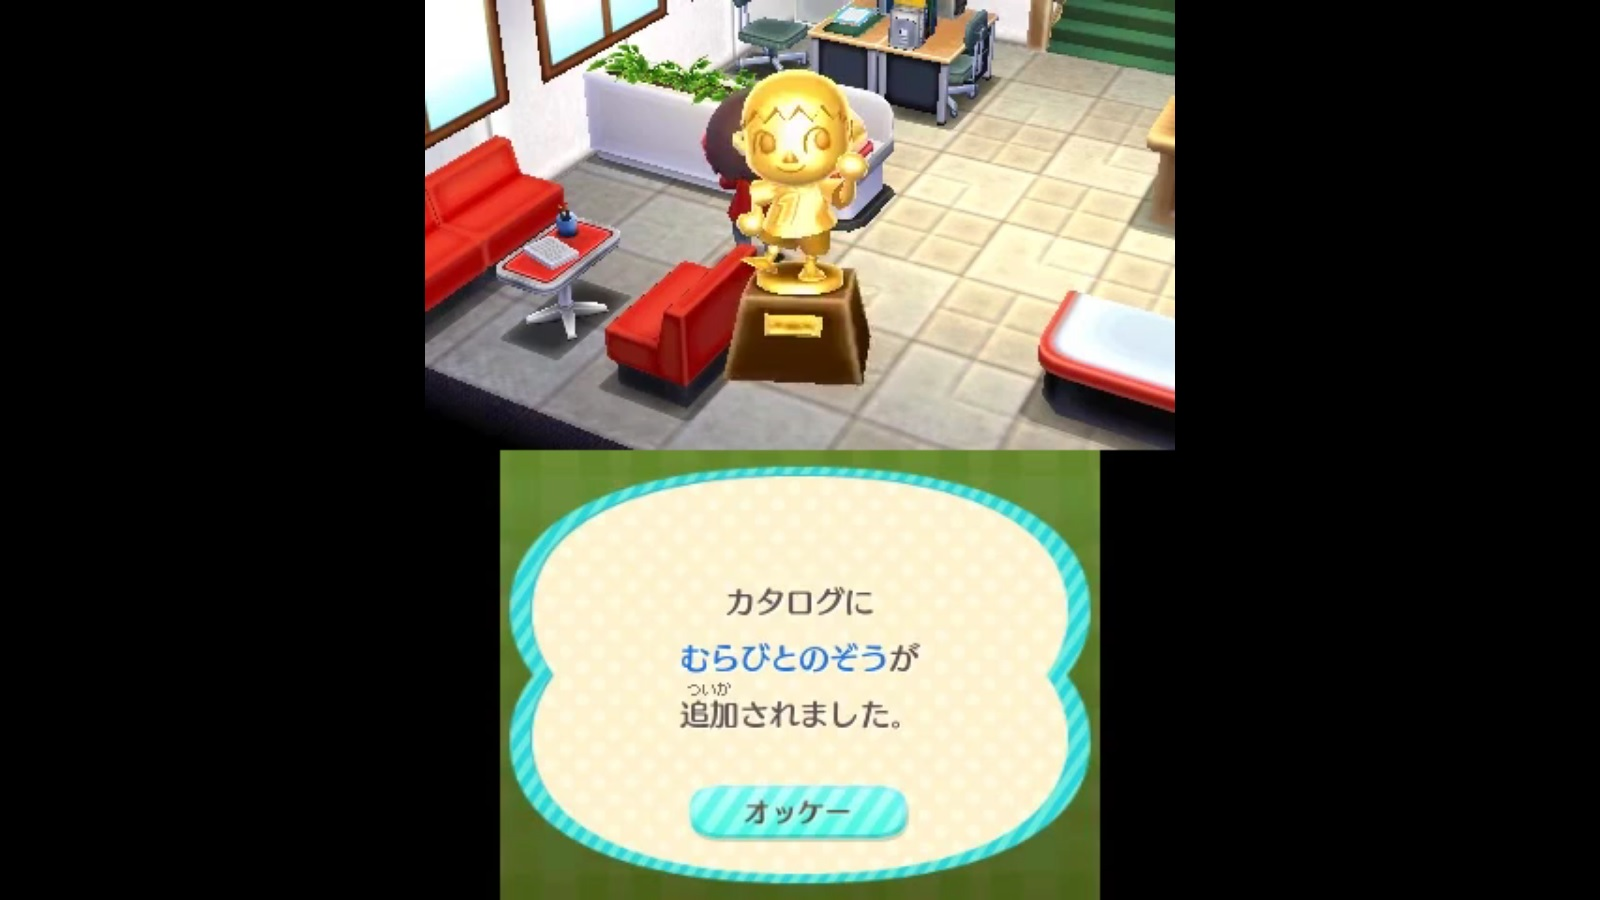 animal crossing happy home designer footage of the villager posted on july 31 2015 by brian ne brian in 3ds videos